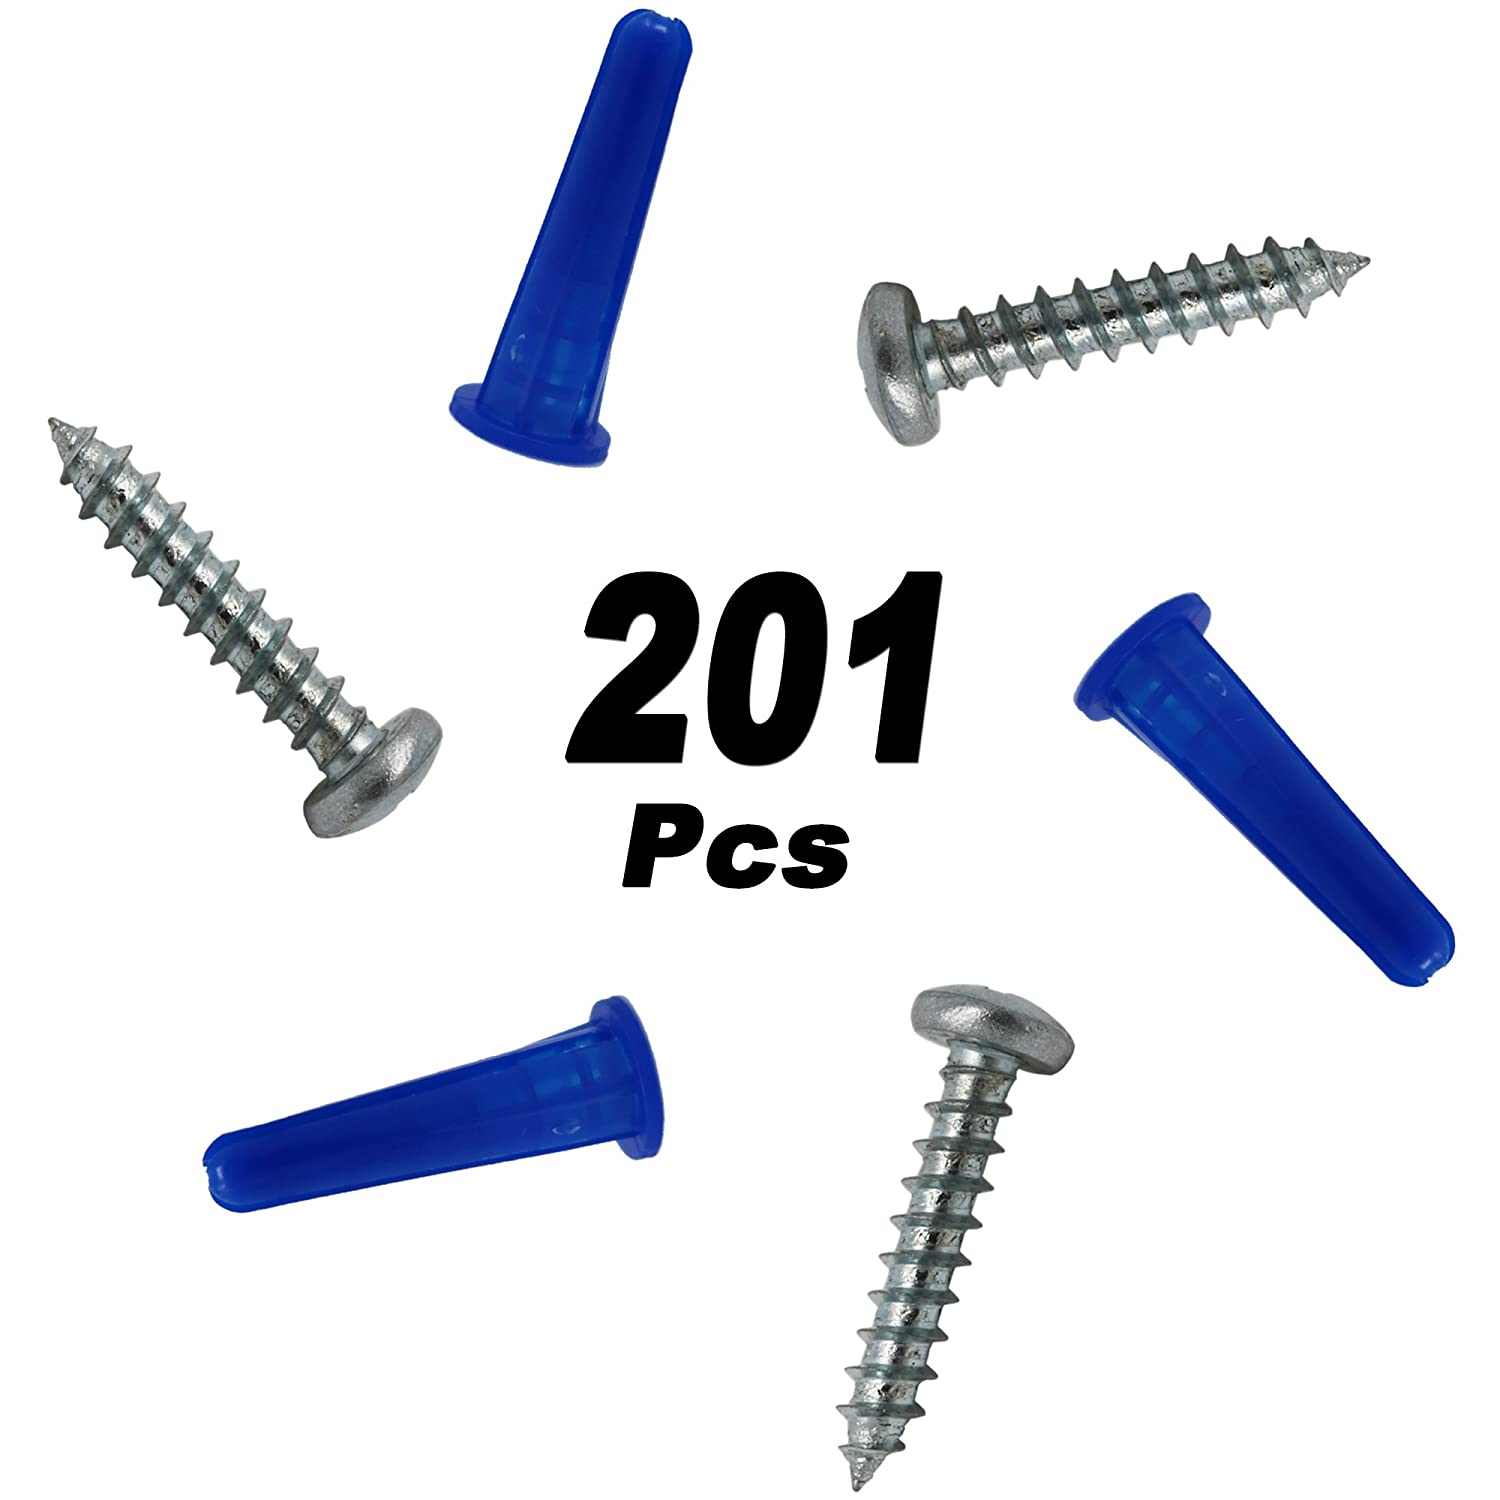 LTD T.K.Excellent Blue Conical Plastic Anchor and Self Tapping Screw and Masonry Drill Bit,201 Pieces zhejiang excellent industries CO